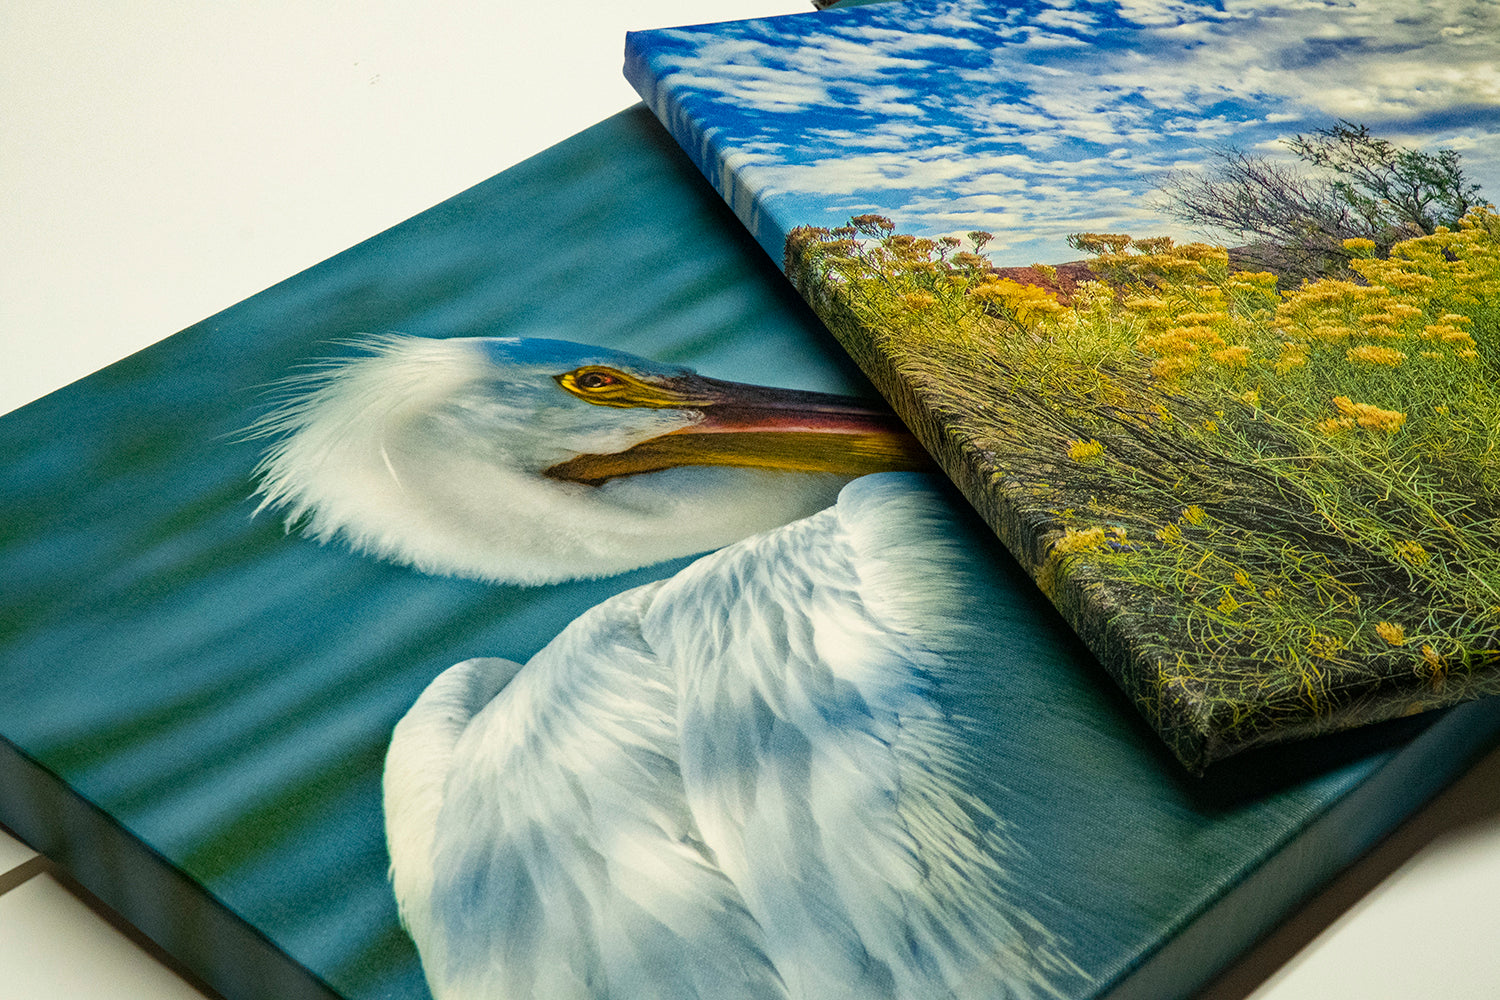 A Canvas Gallery Wrap mounted on 1 1/2 inch stretcher bars #canvasprints